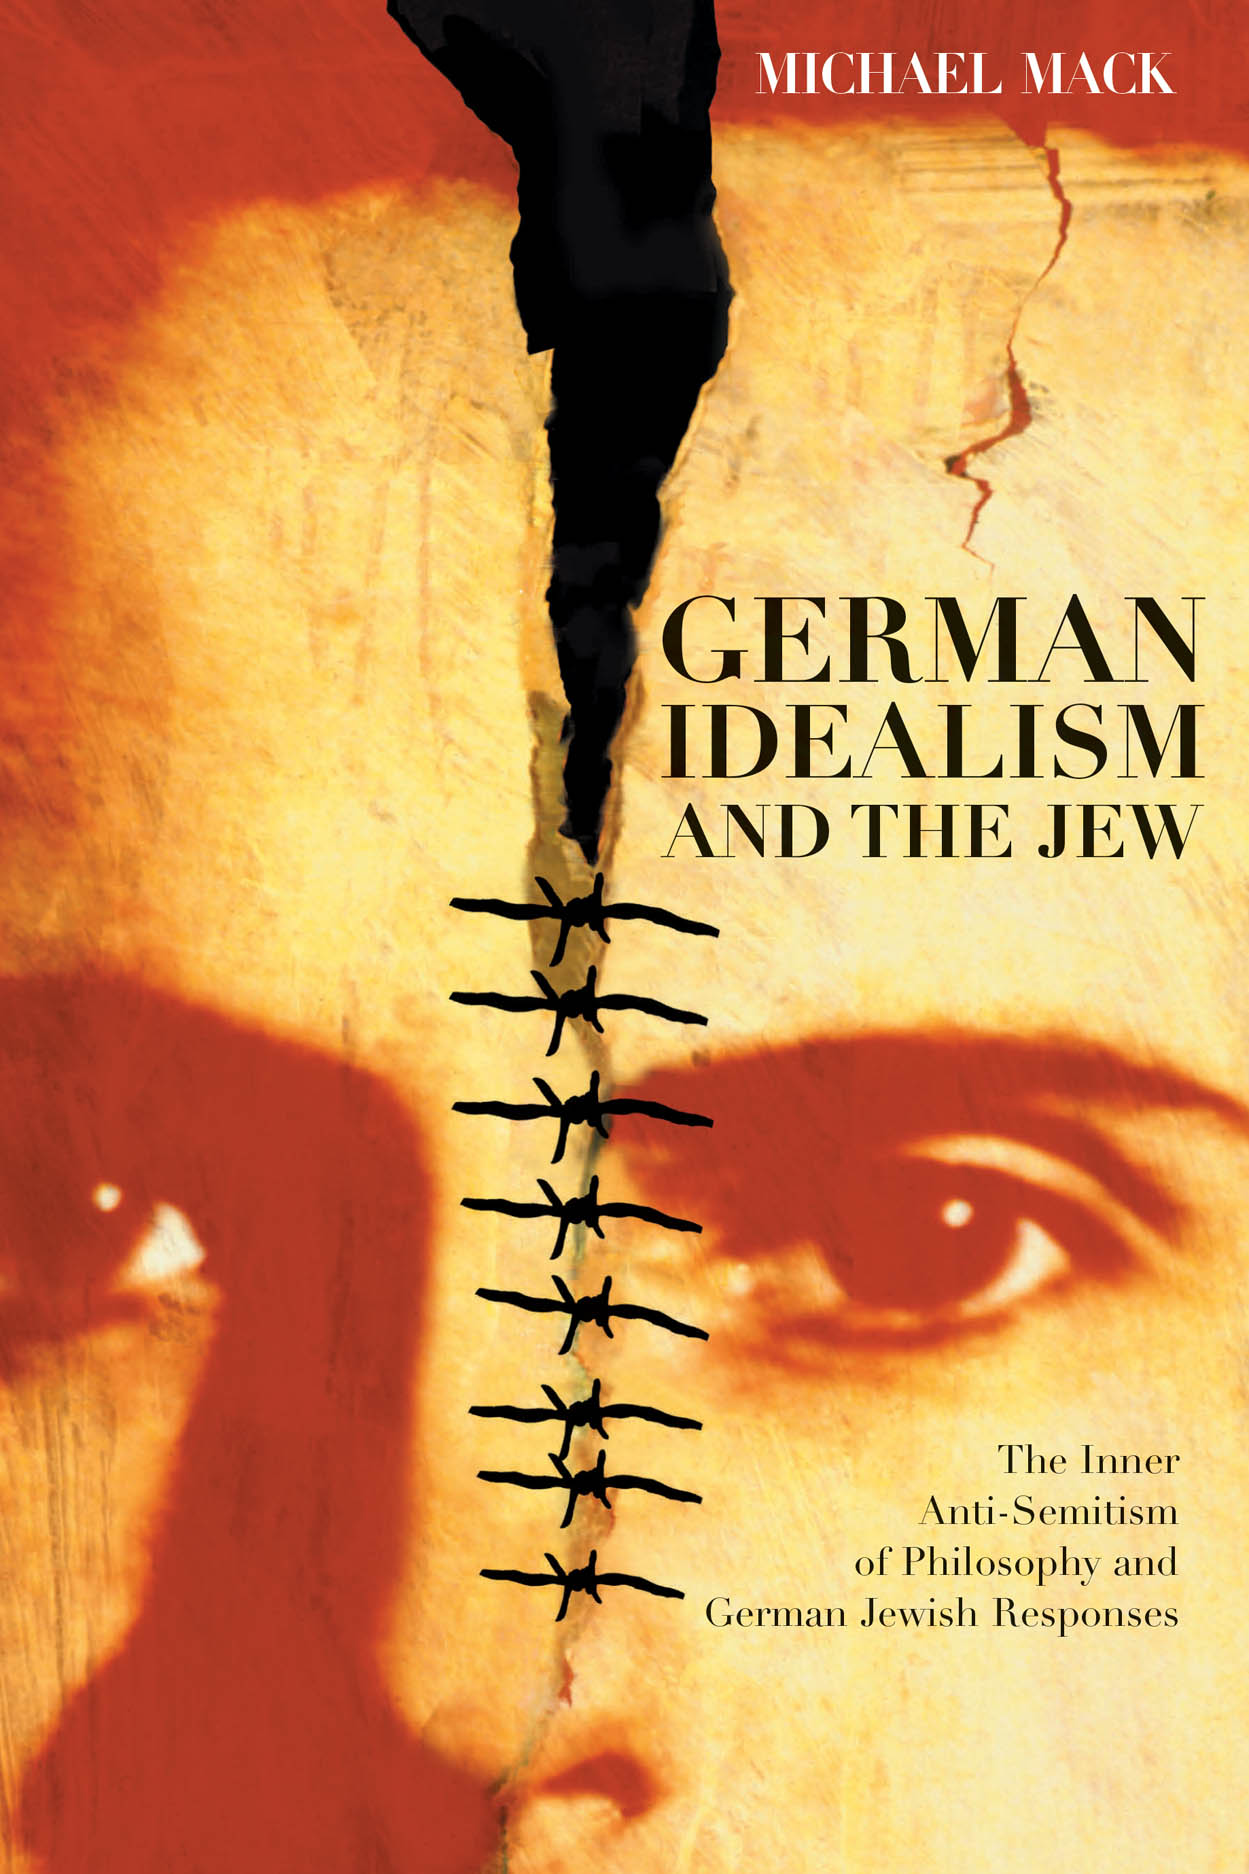 German Idealism and the Jew